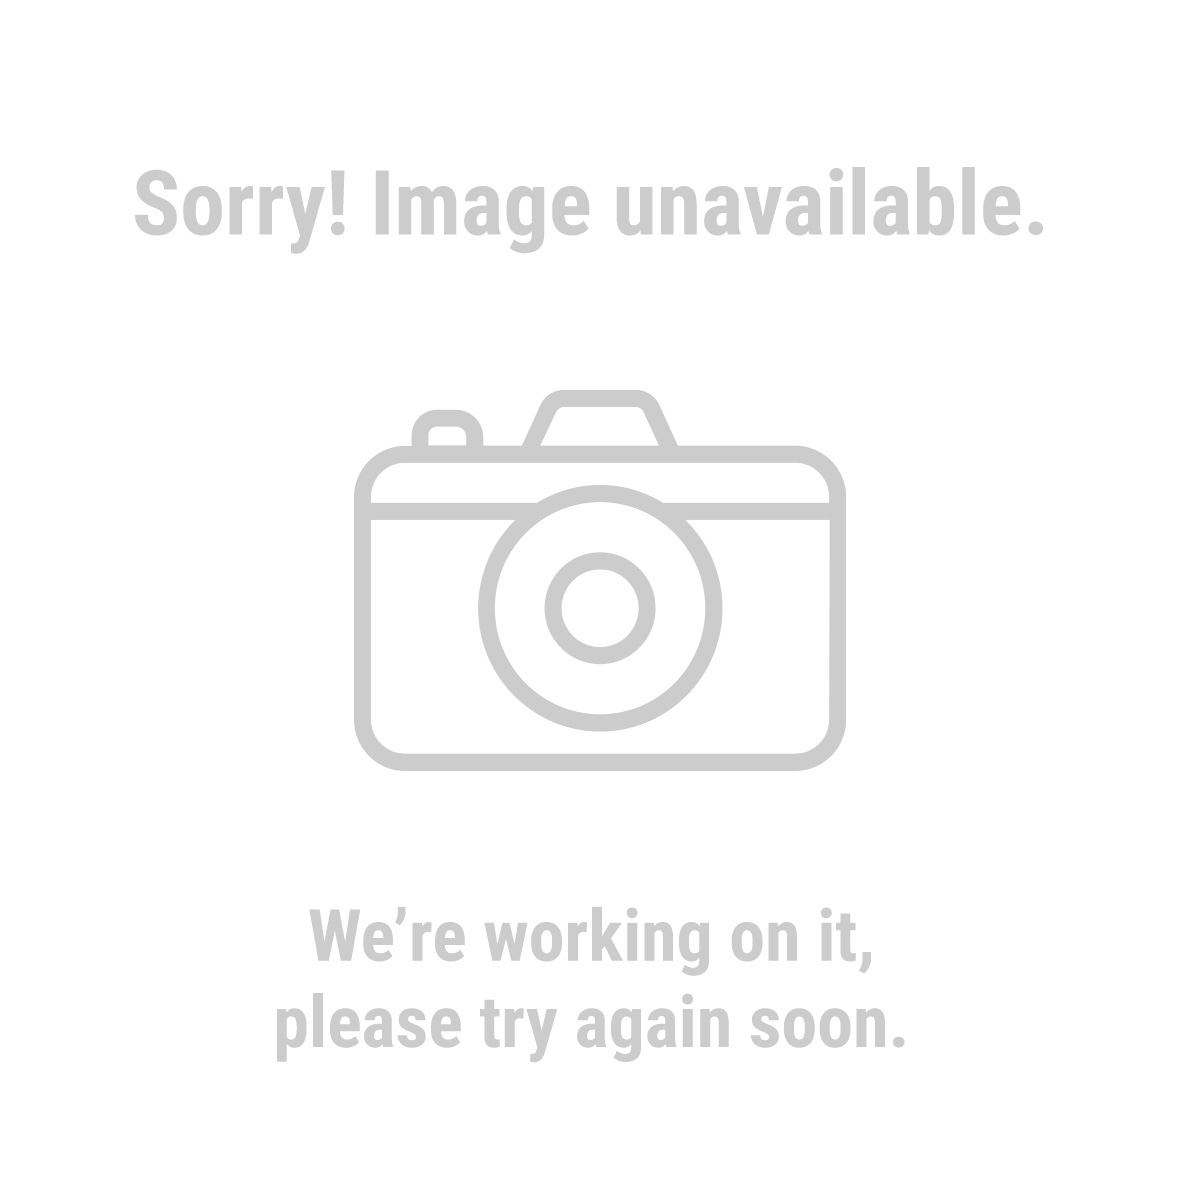 Gordon 94740 All-Purpose Solar Lantern